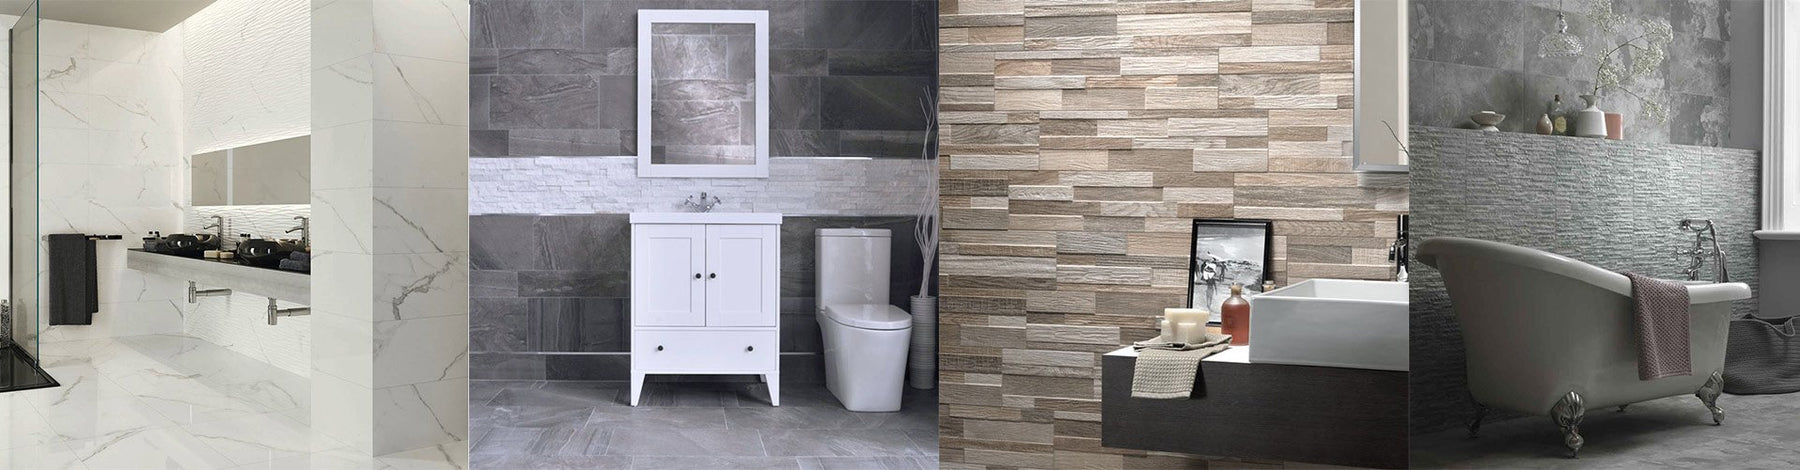 How to buy tiles for the bathroom-ceramicplanet.co.uk